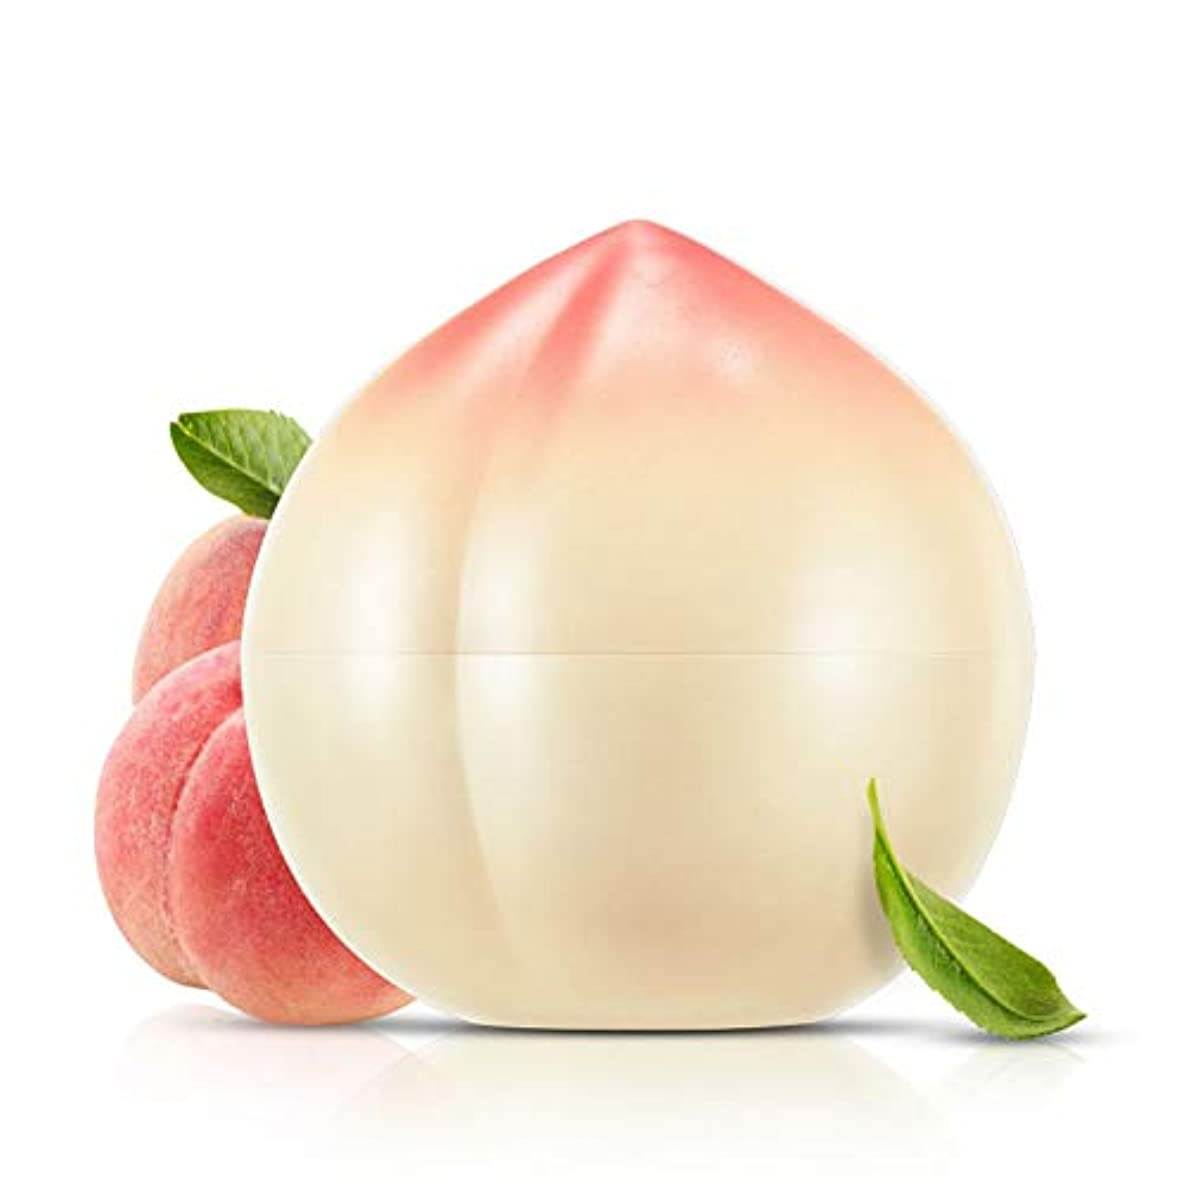 ローマ人ちょうつがい代名詞Alluole Peach Hand Cream Moisturizer for Dry Cracked Hands Anti-aging Skin Care 40ml